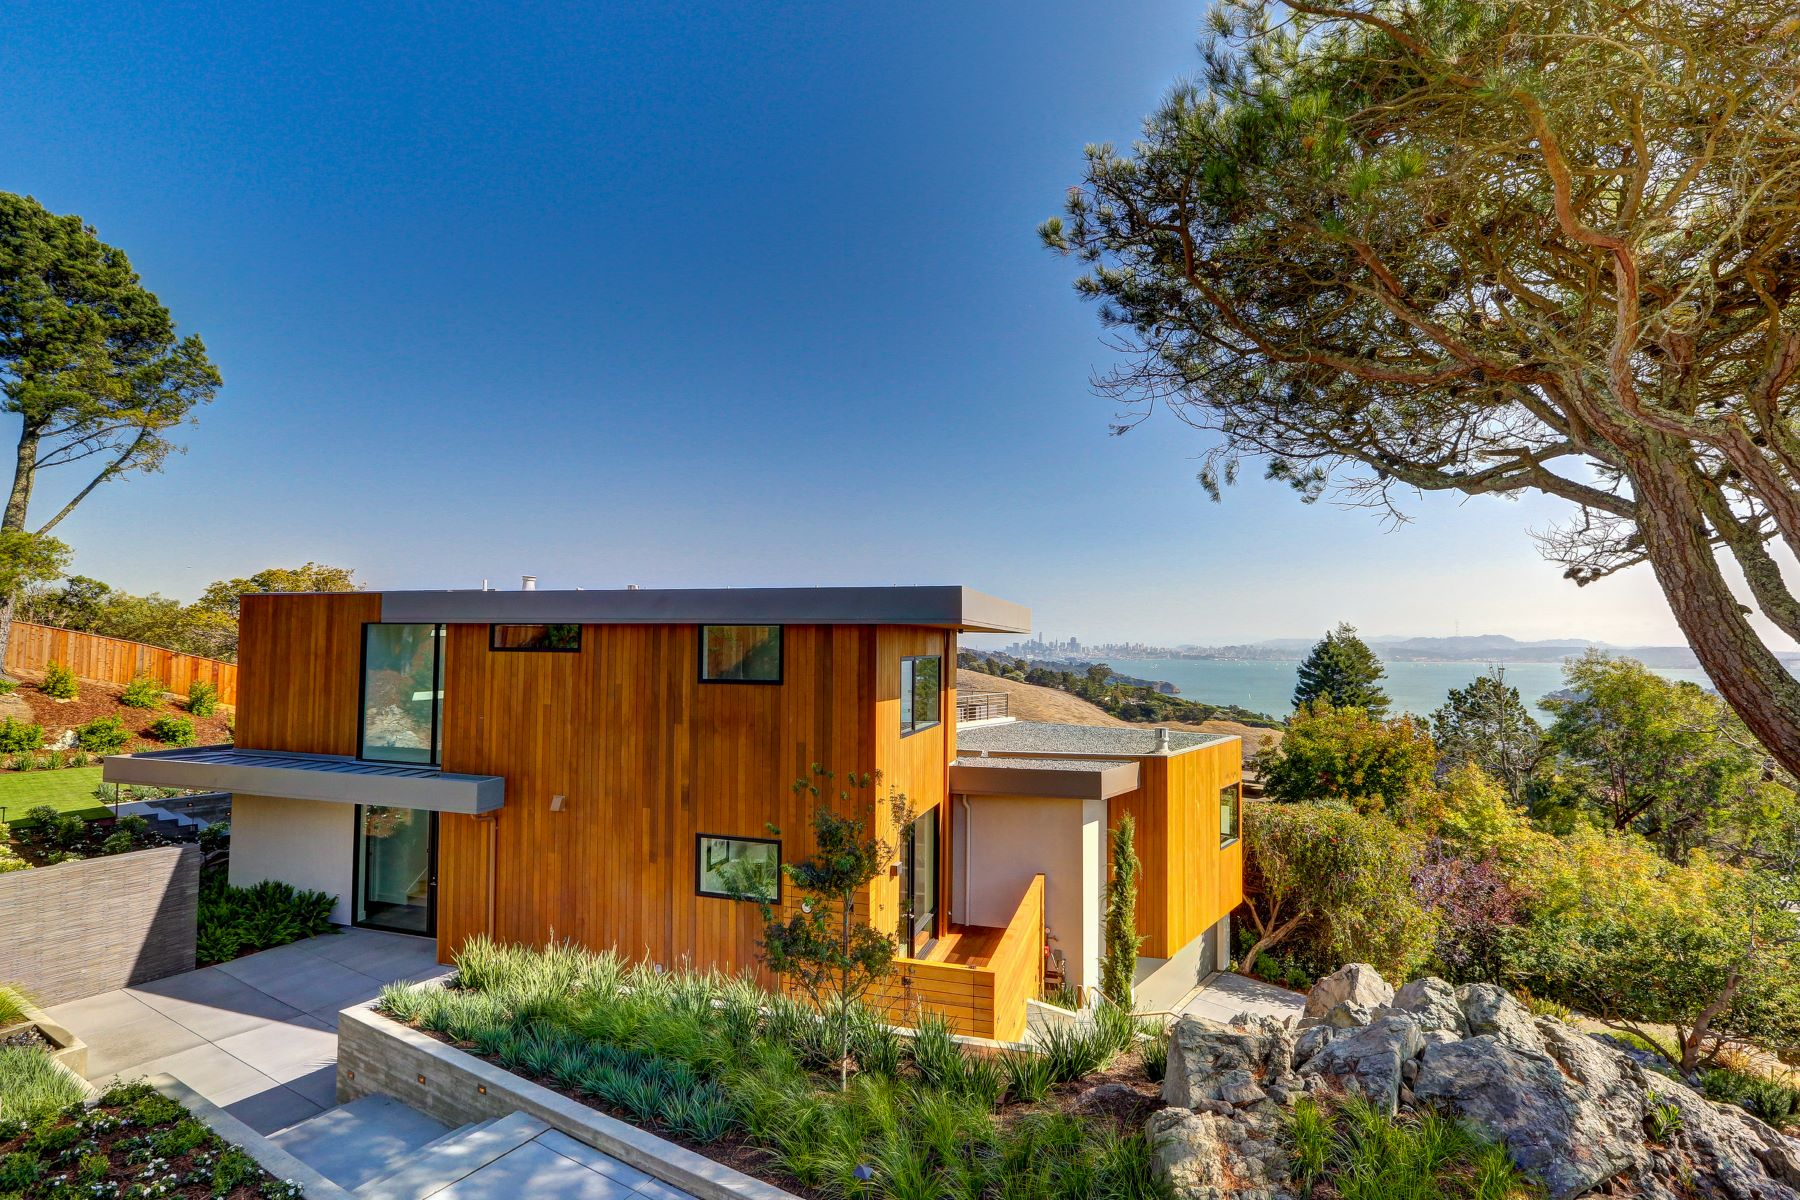 Single Family Home for Sale at Spectacular Ultra Contemporary Home! 86 Sugarloaf Dr Tiburon, California 94920 United States